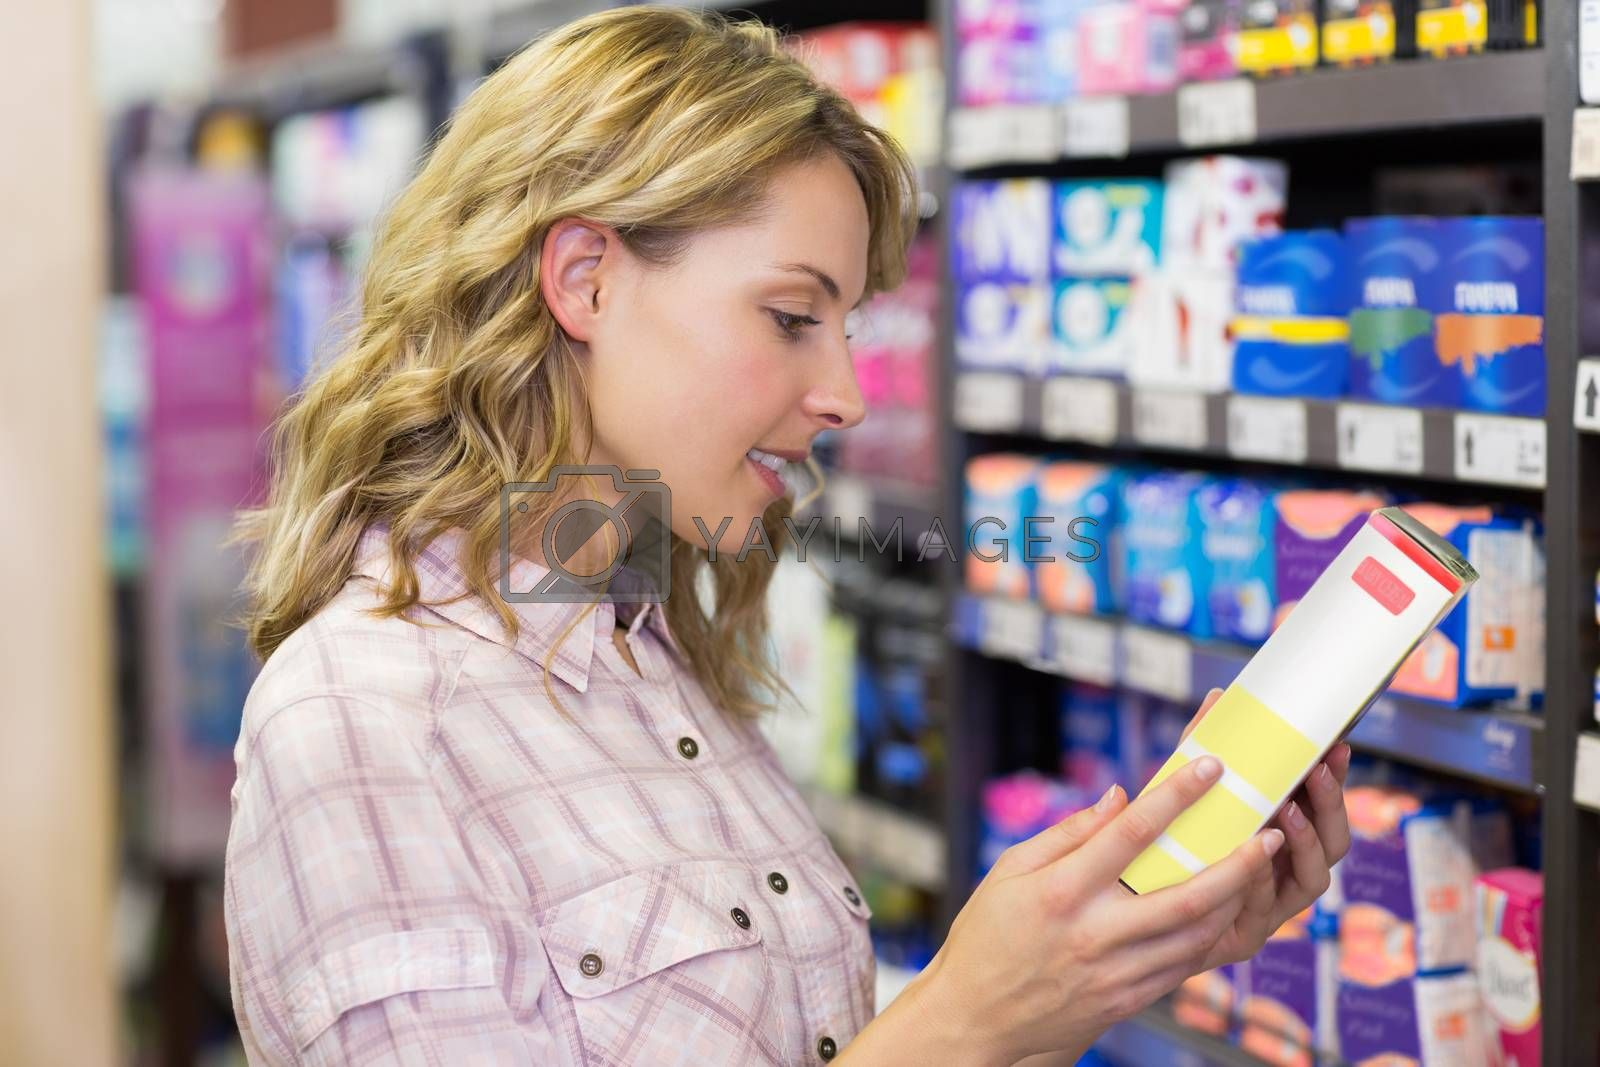 Royalty free image of Side view of smiling pretty blonde woman looking at a product by Wavebreakmedia